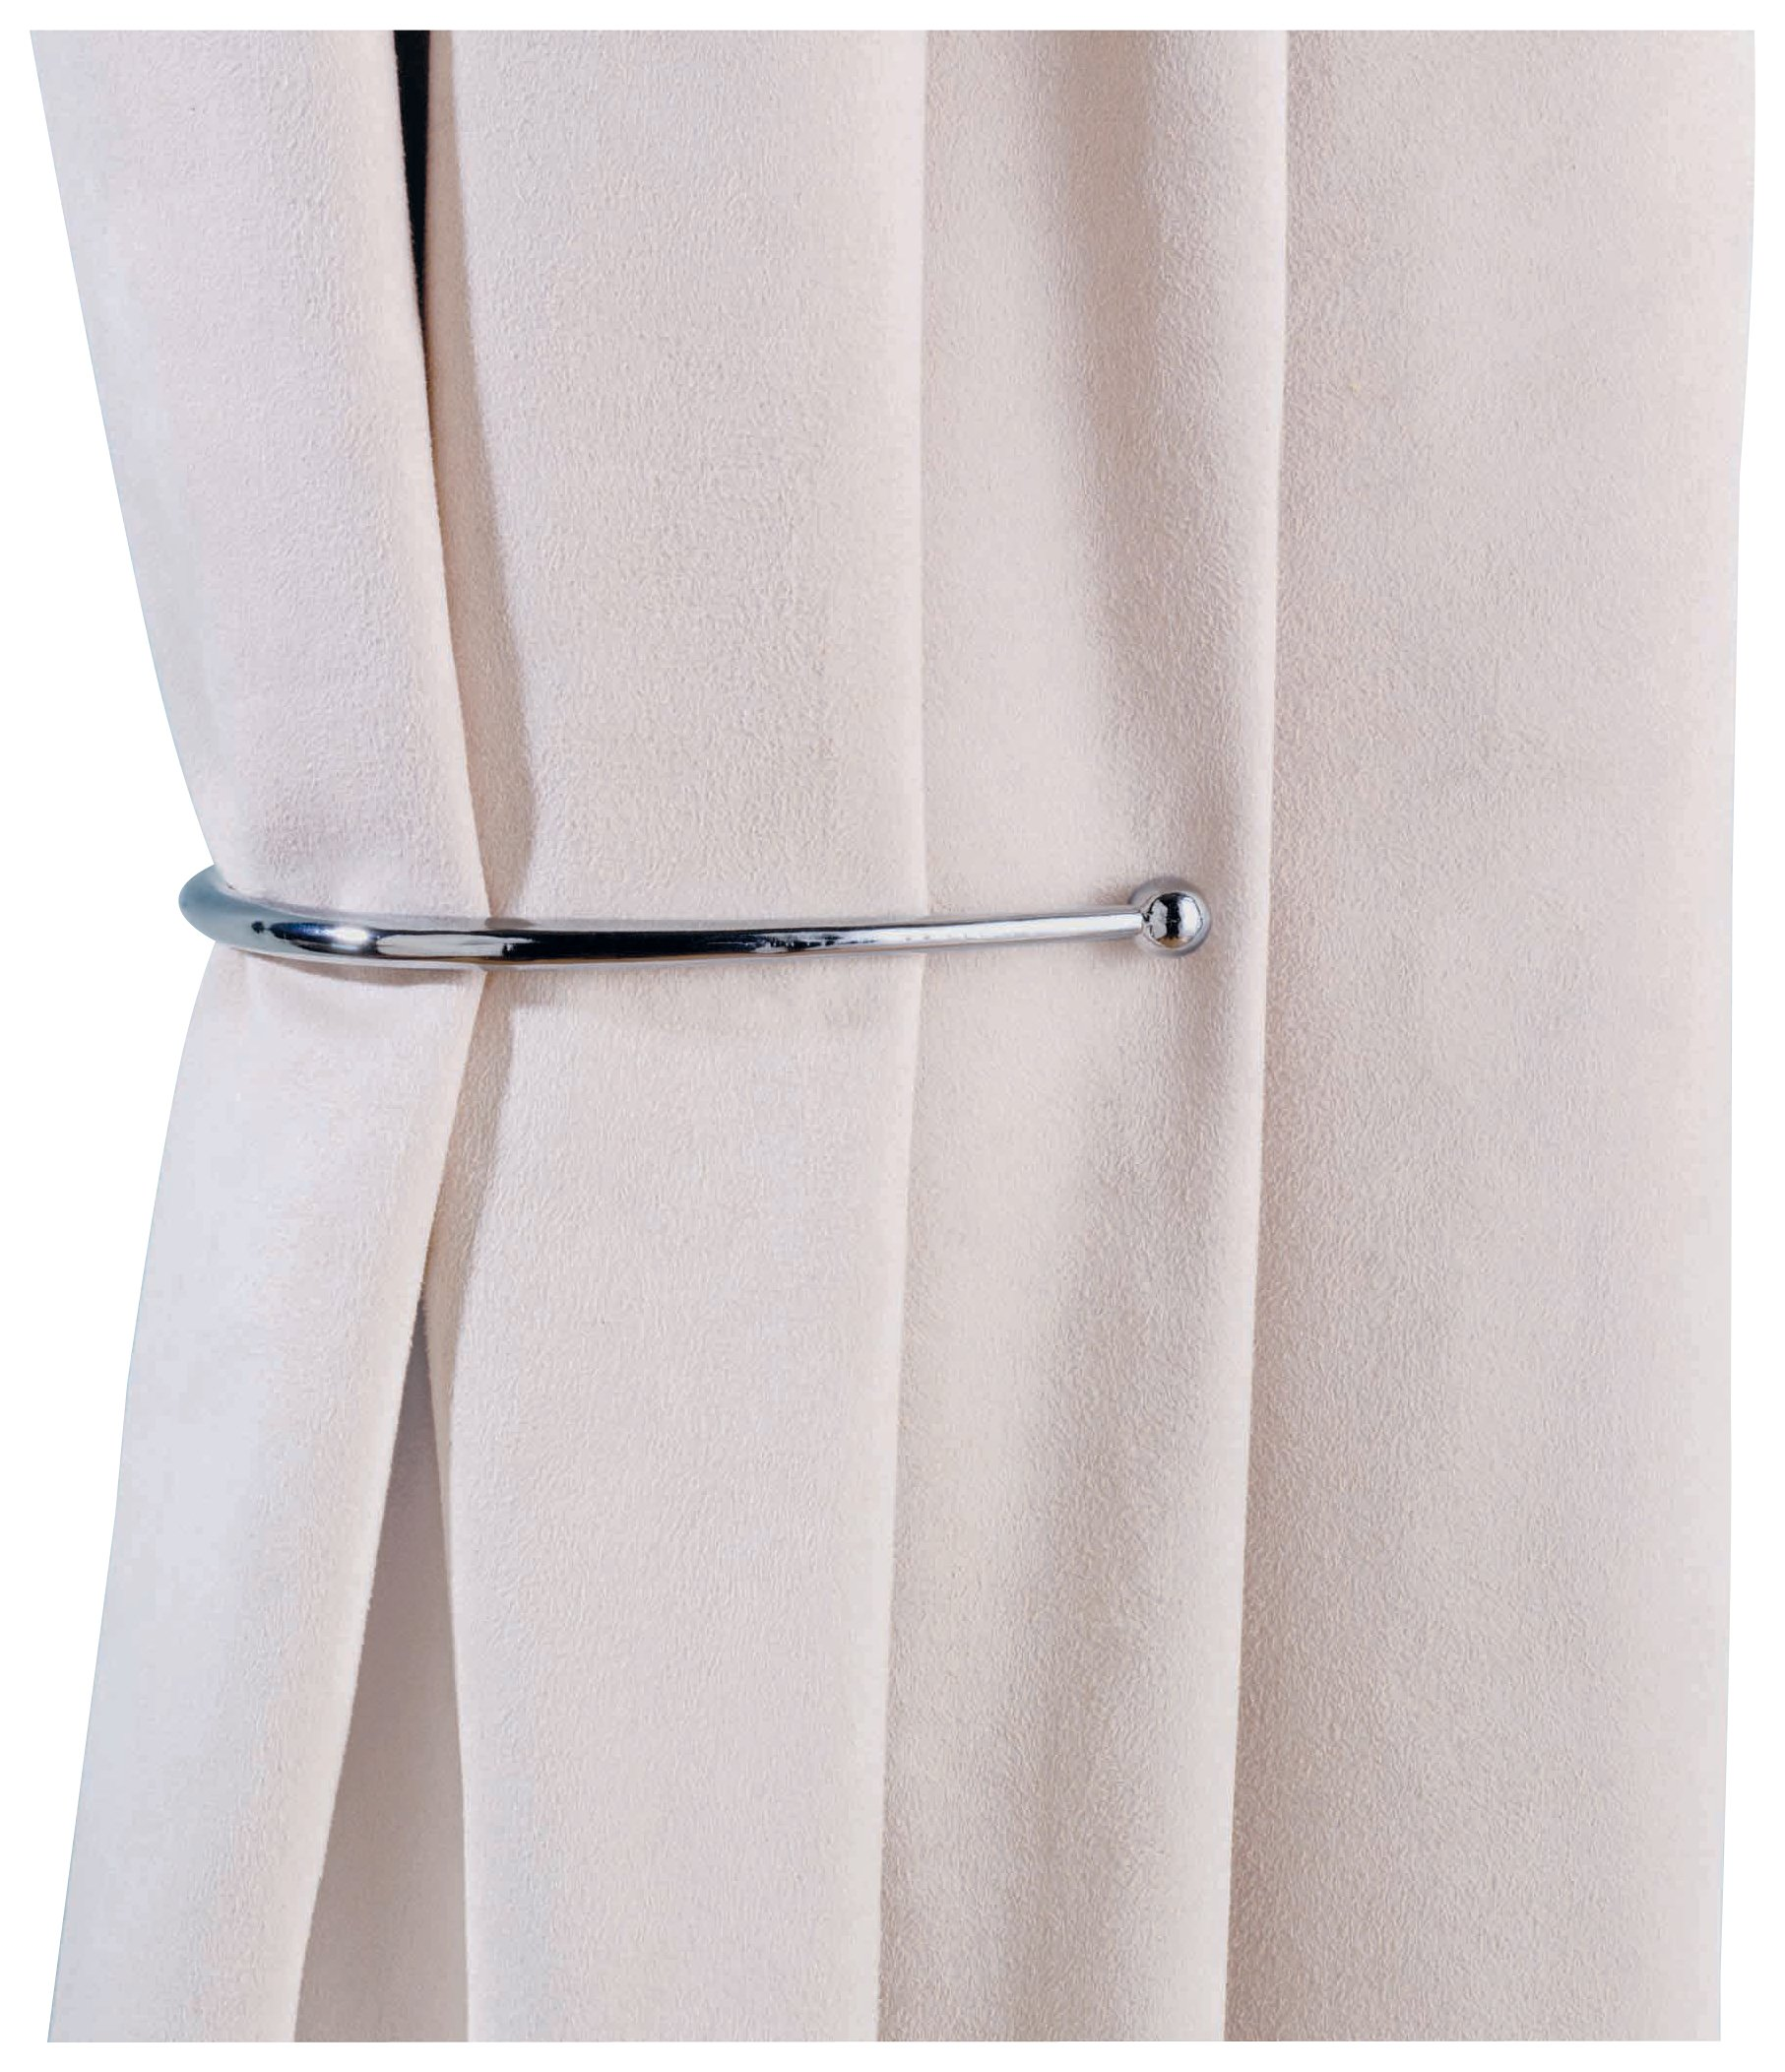 Argos Home Pair of J-Shaped Curtain Holdbacks - Chrome